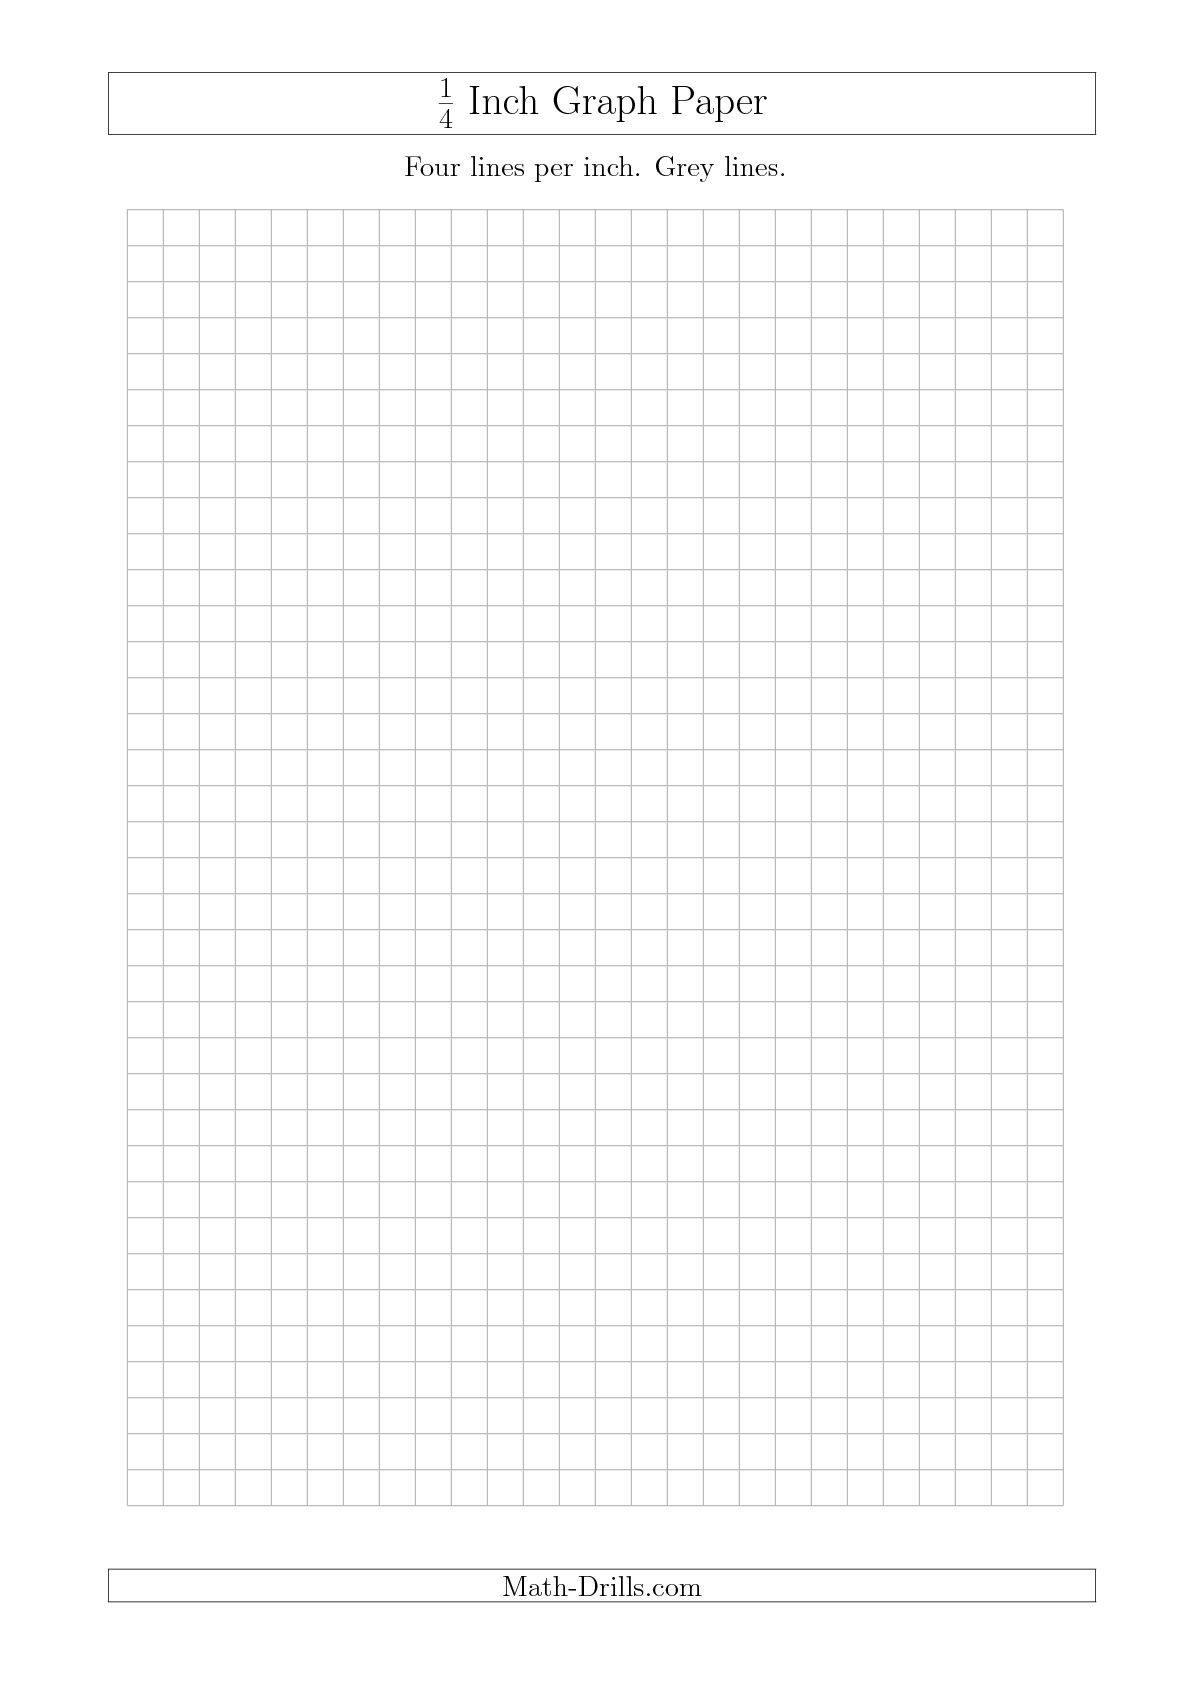 New A4 Sizes With Imperial Measurements Like This One 1 4 Inch Graph Paper With Grey Lines A4